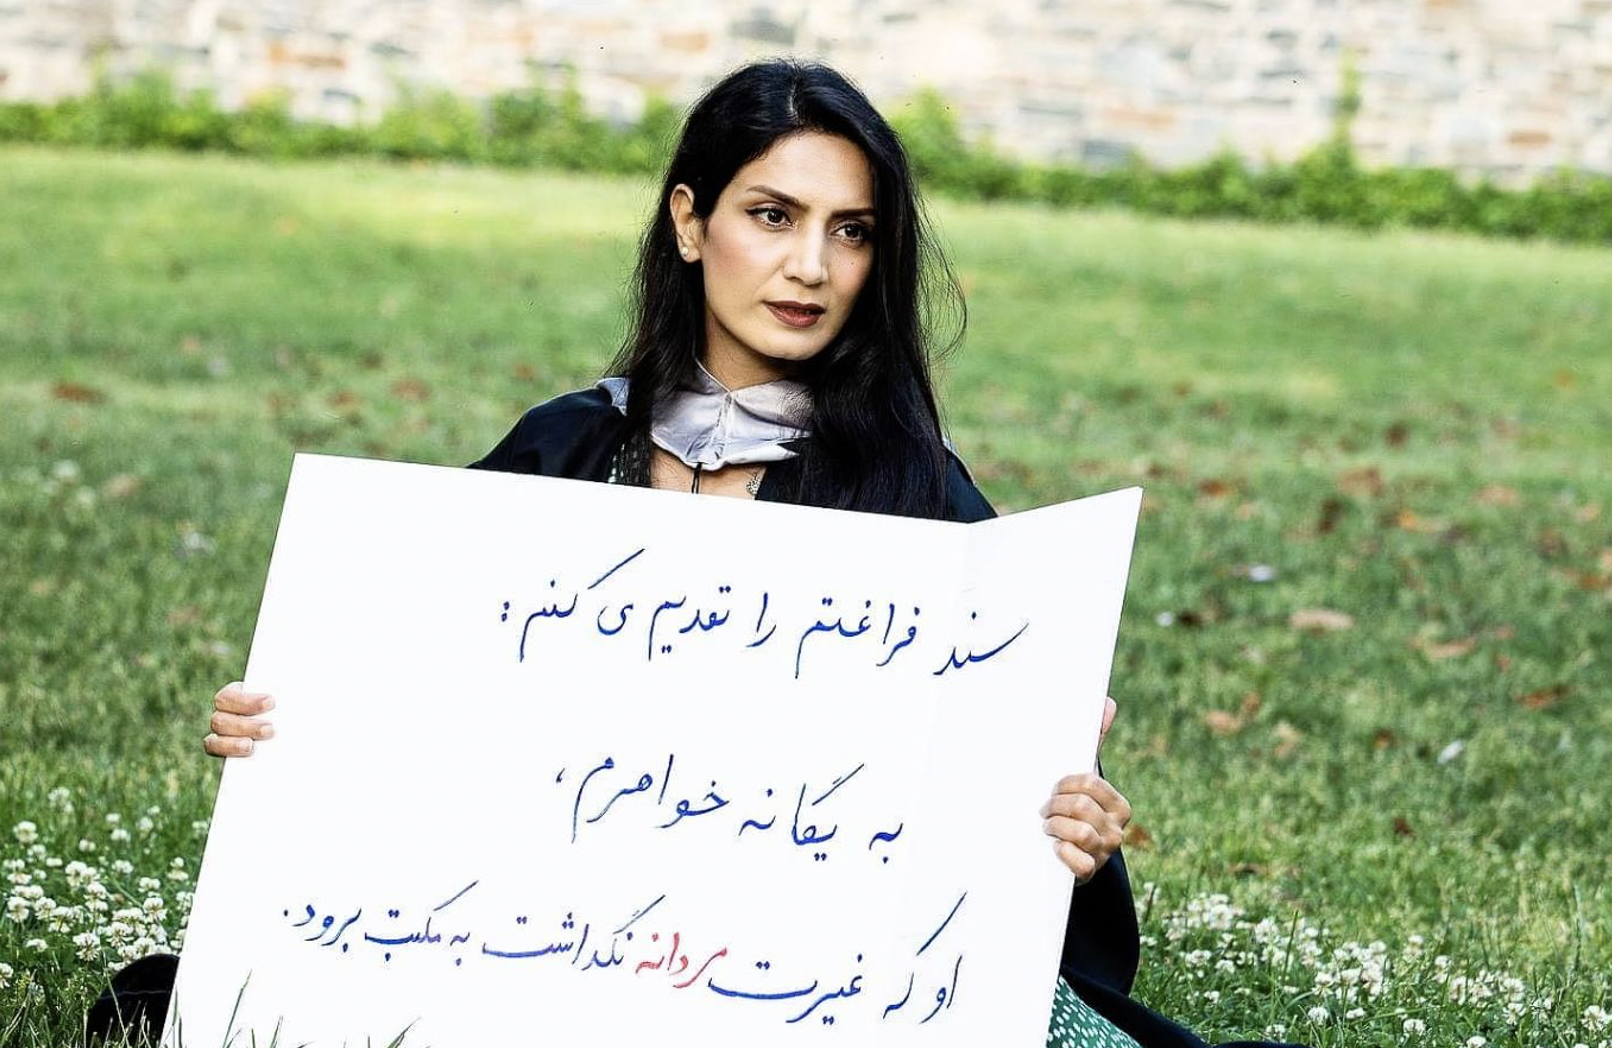 The Freedom Of Afghan Women Depends On Education And Empowerment Ms Magazine